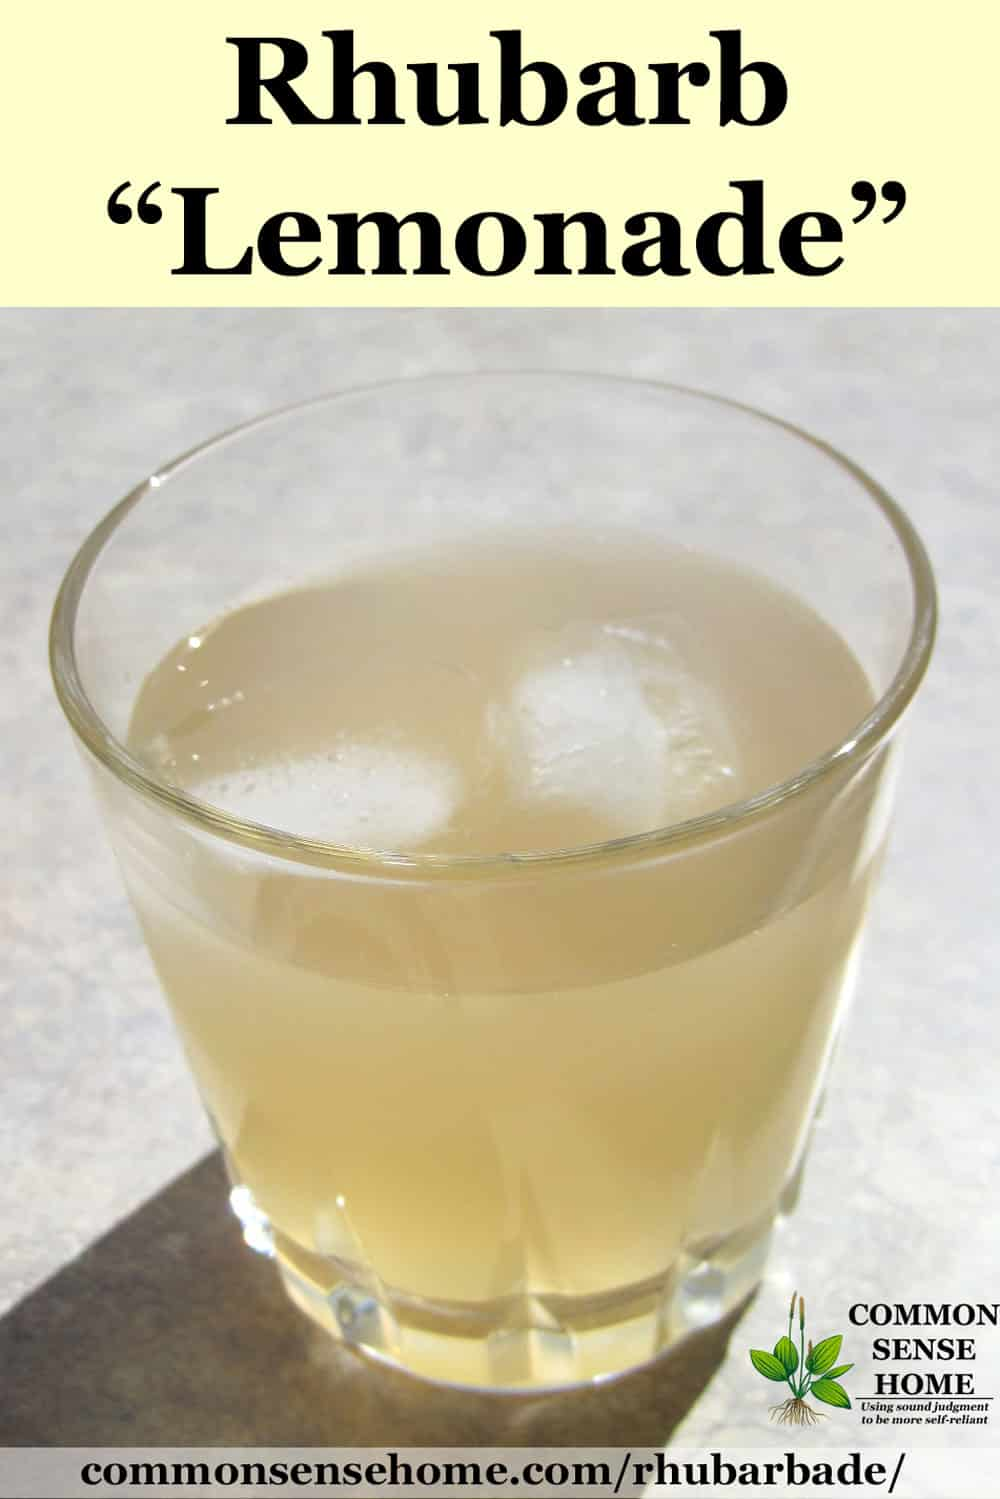 rhubarb lemonade drink in glass with ice